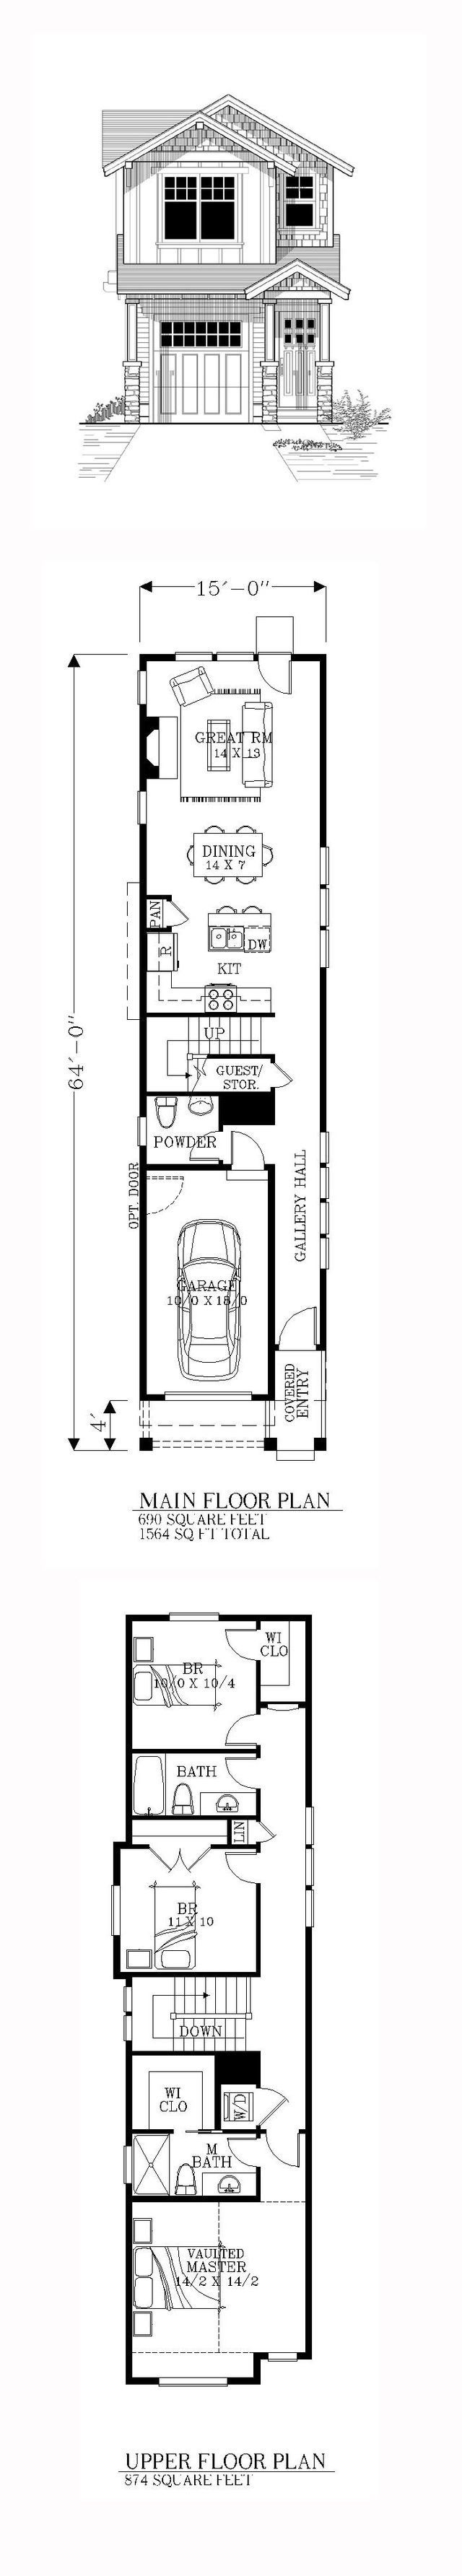 Large And Narrow 3 Bedroom House Narrow Lot House Plans Narrow House Plans Narrow Lot House